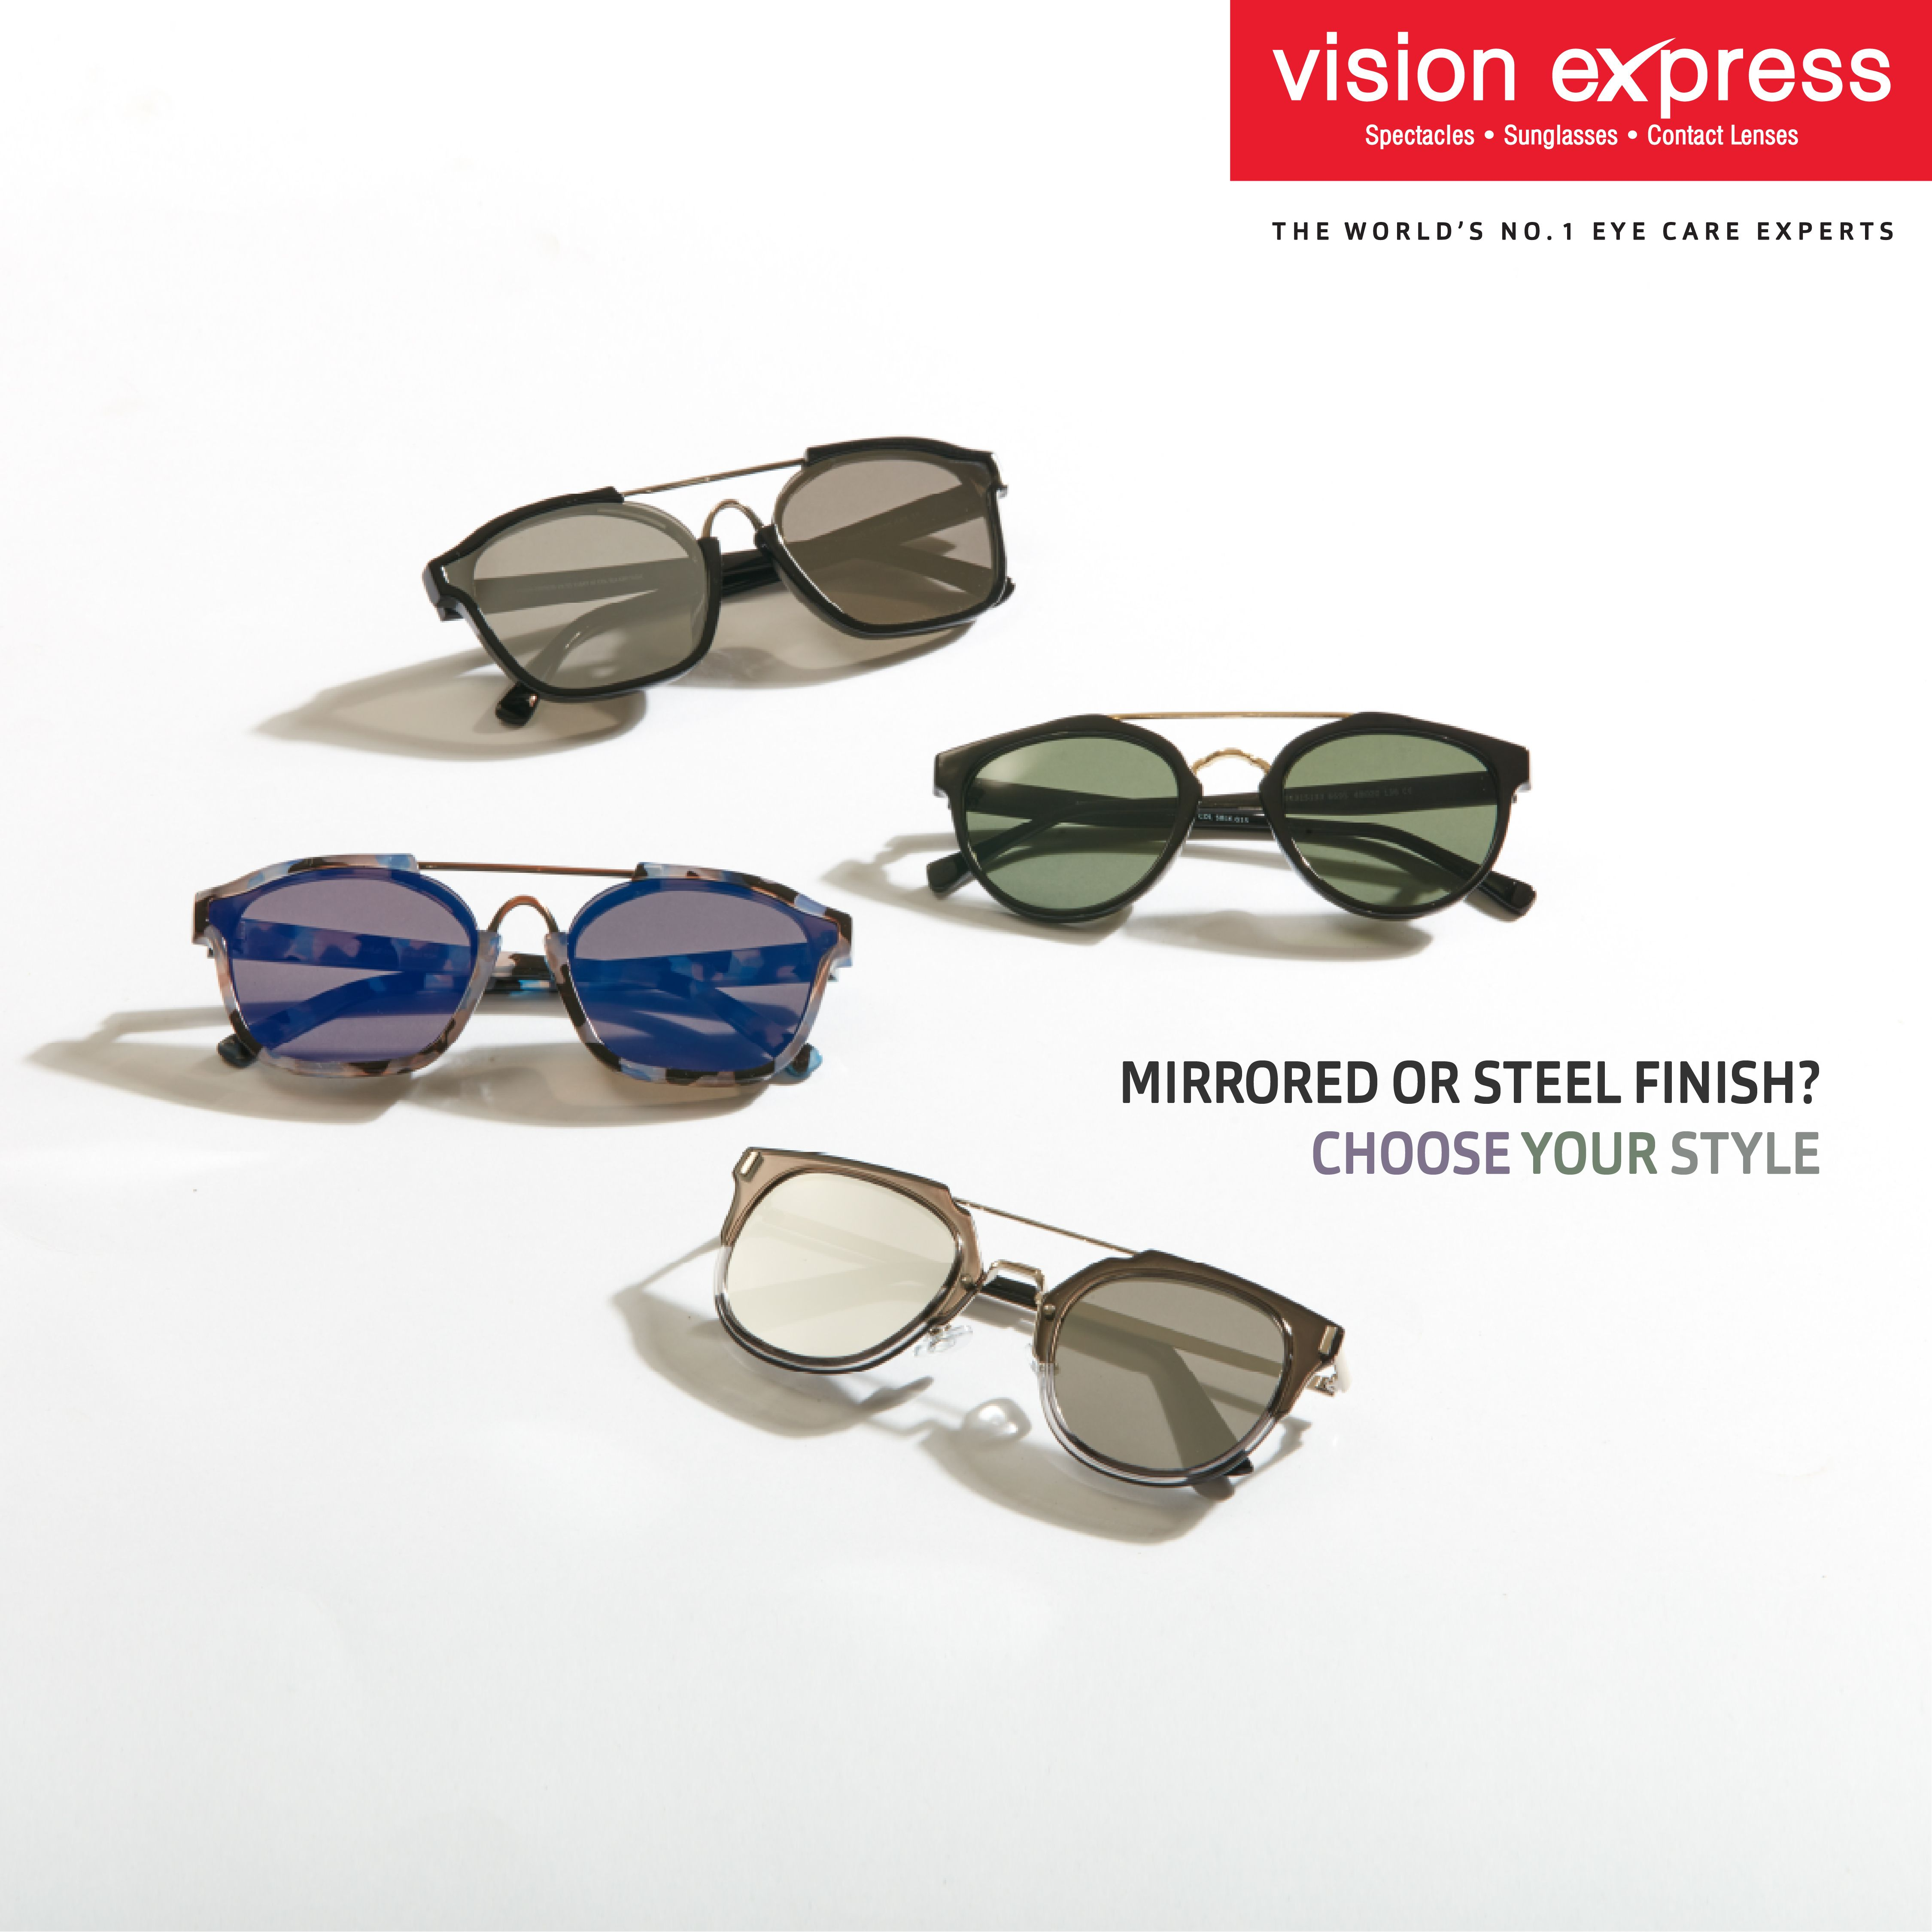 e5e76110206 Get the latest Browline Round Sunglasses from Vision Express.  Sunglasses   Style  Eyewear